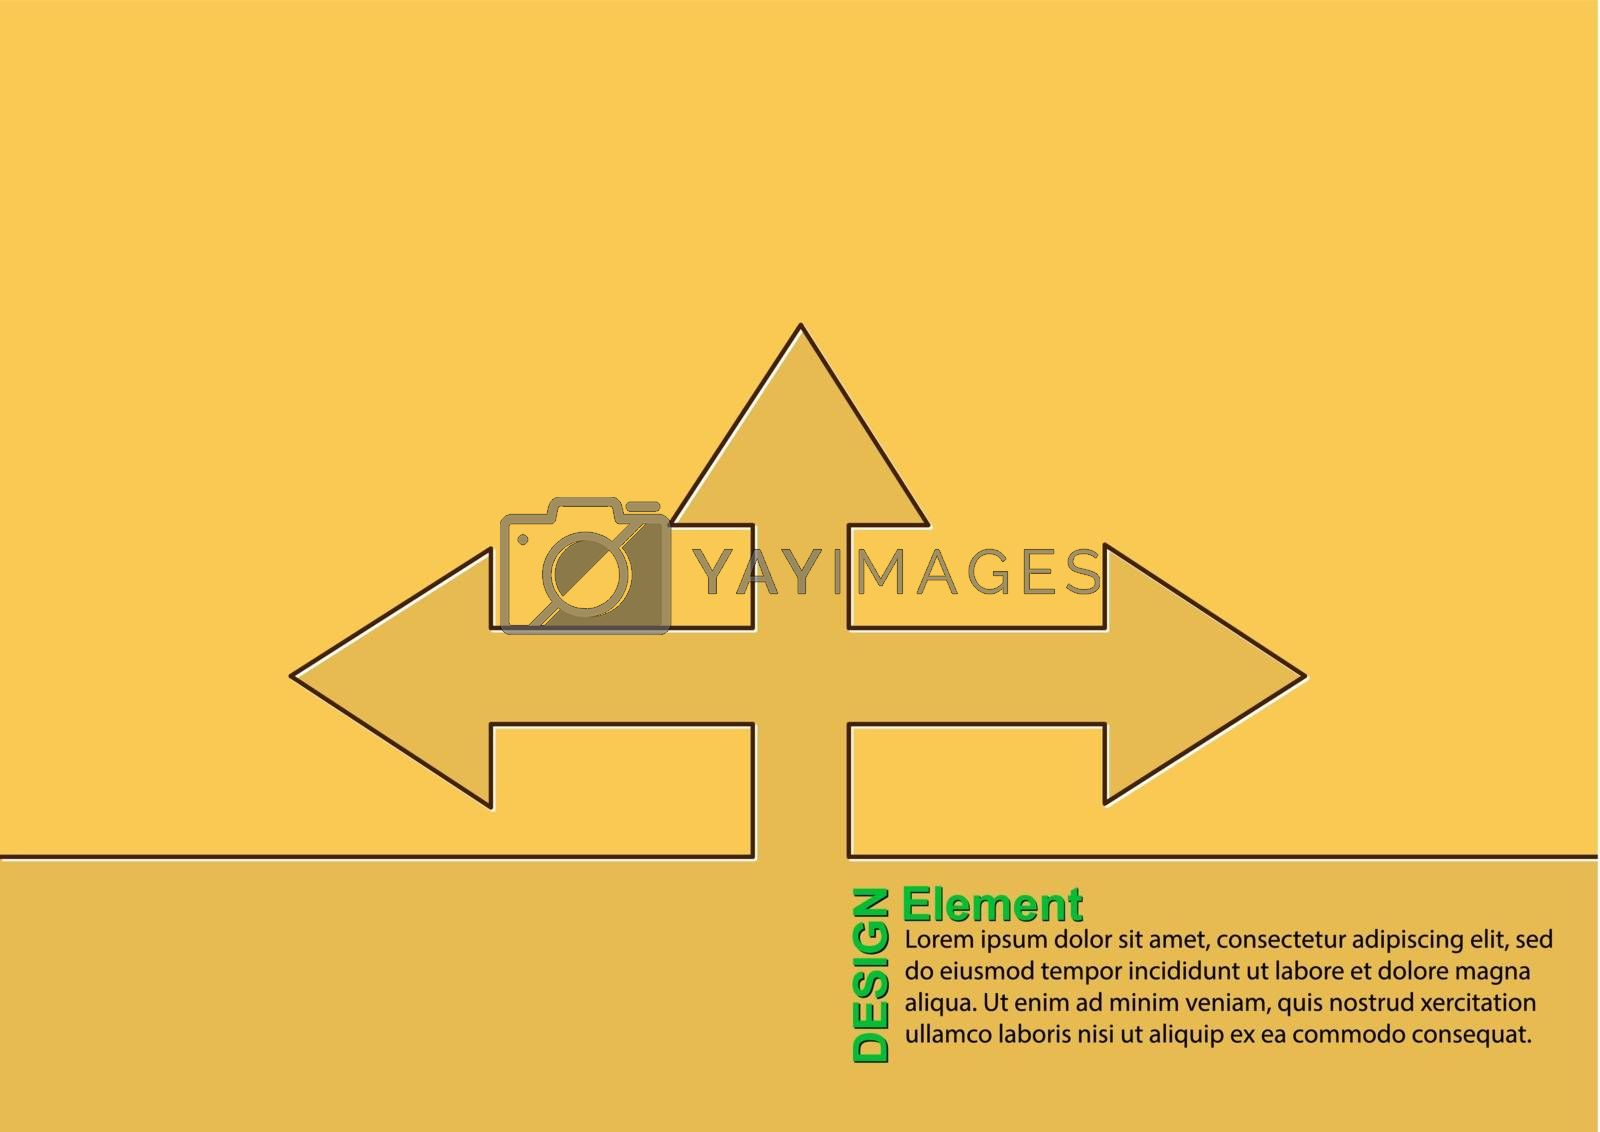 Infographics, Graphic design. Direction of movement or stage of development for schematic illustration